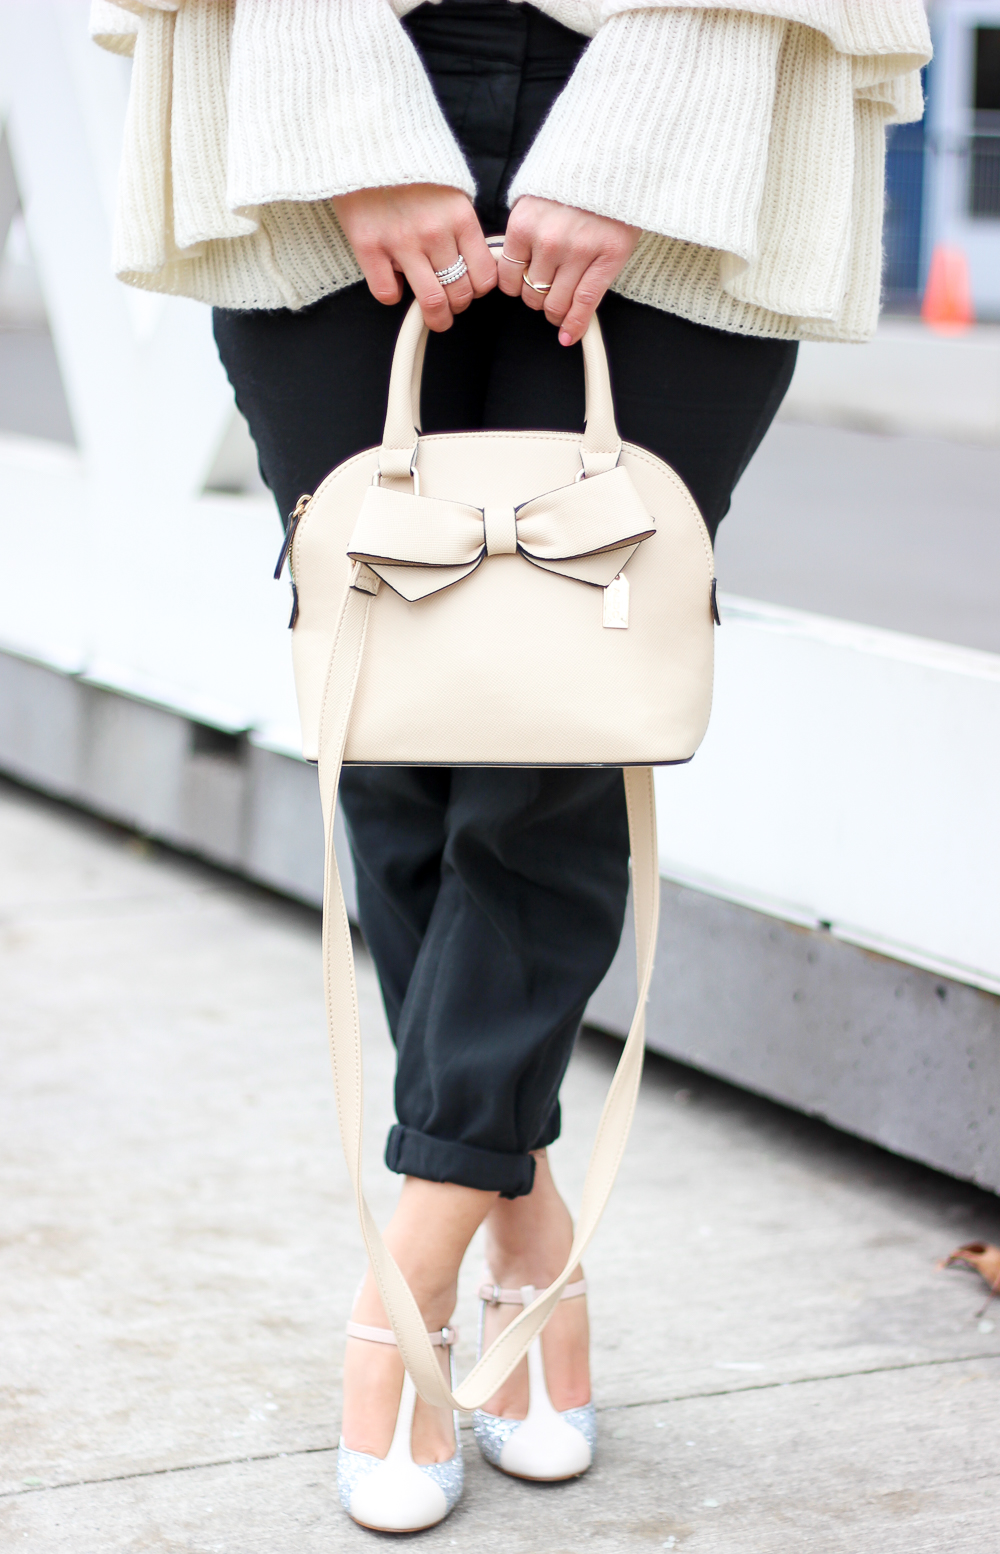 Pastel pink purse with a bow on the front from Aldo Accessories is an affordable alternative to a Kate Spade bag